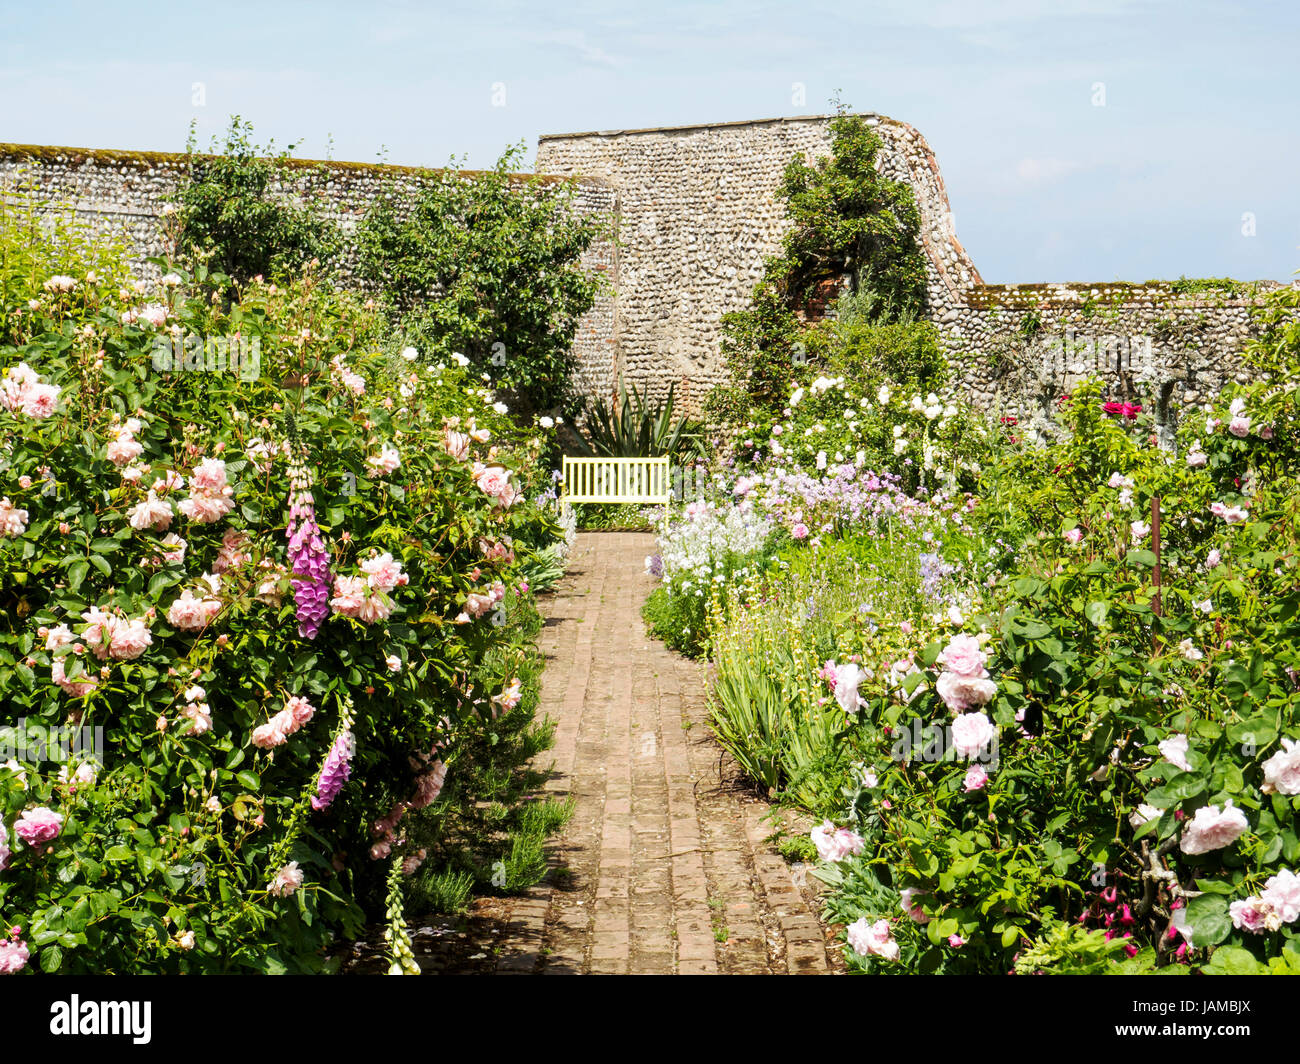 The delightful charm of the rustic walled garden at Wiveton Hall, Norfolk, Stock Photo